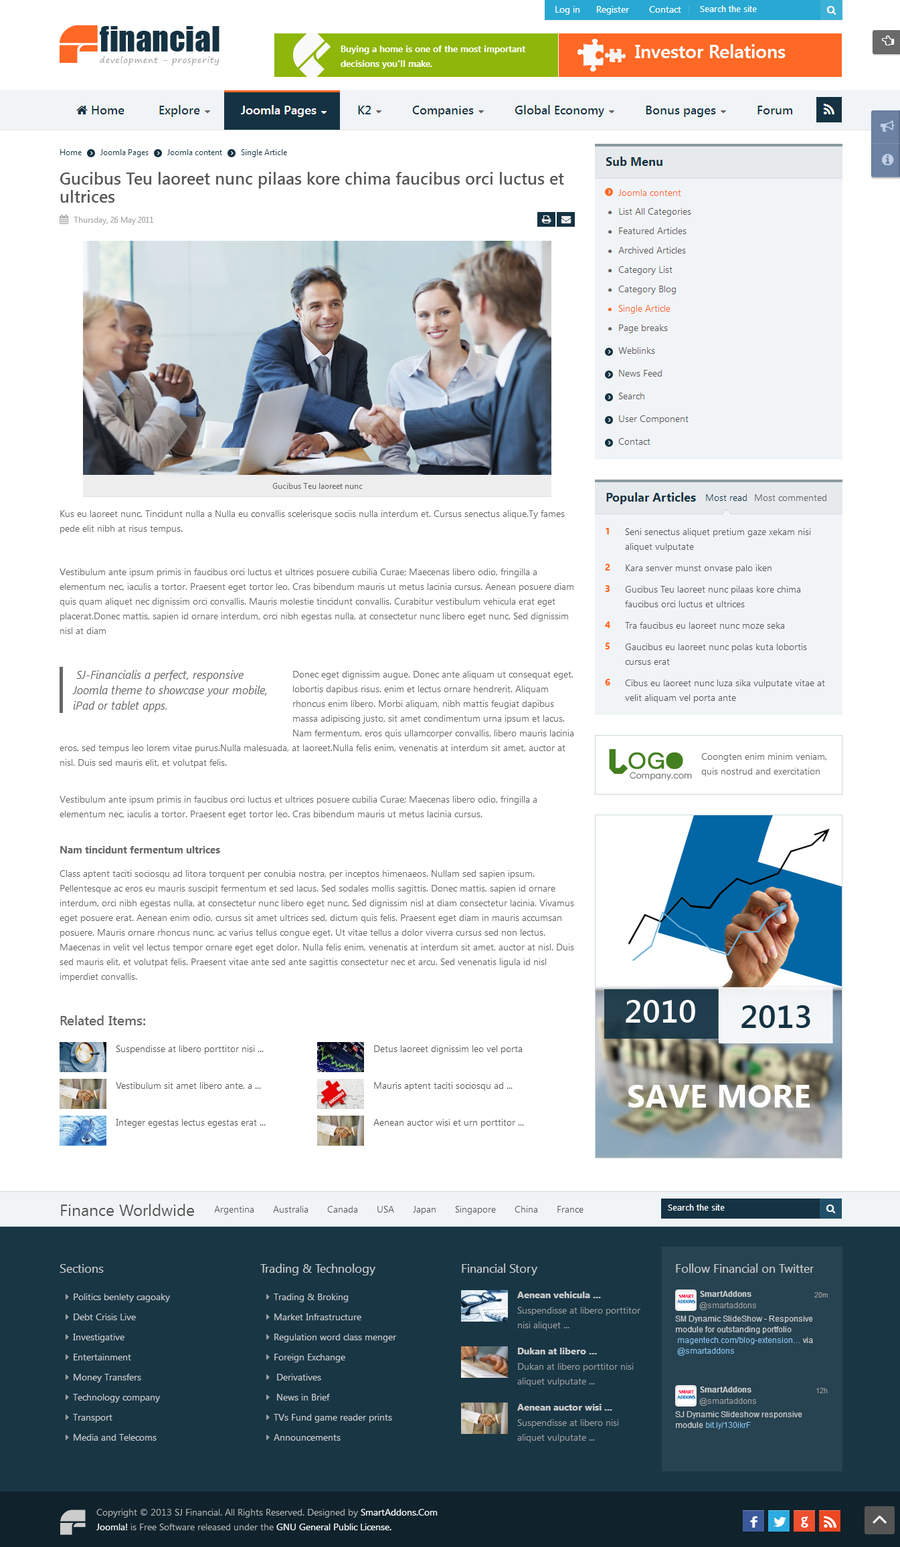 SJ Financial - Responsive Joomla Financial News Template - 05detail.jpg